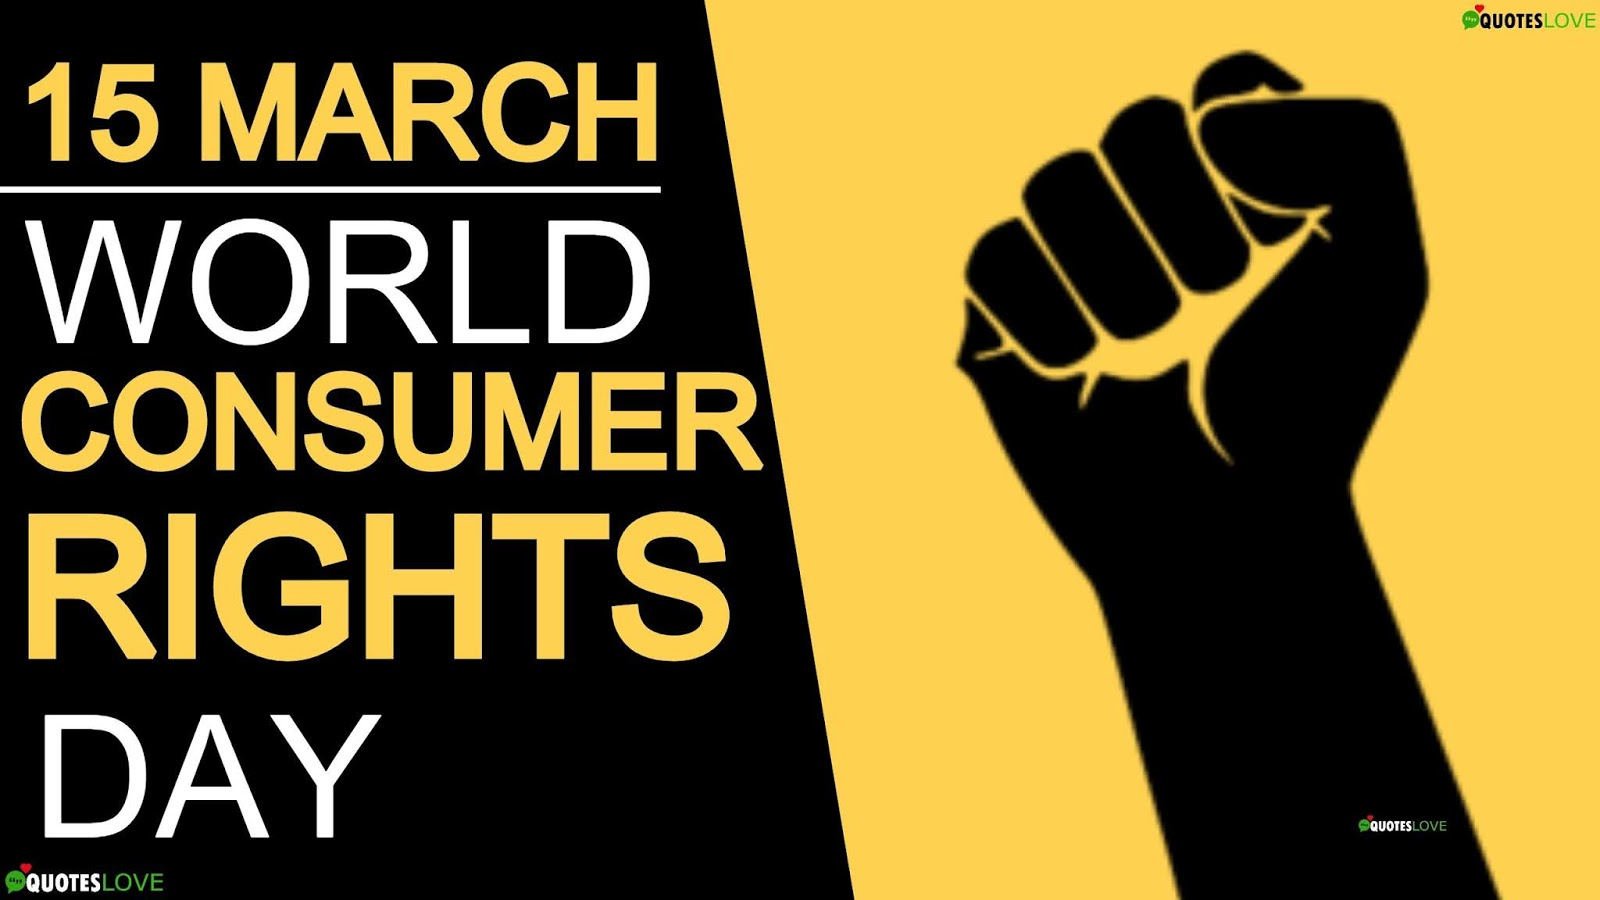 World Consumer Rights Day Quotes, Wishes, Slogan, Theme, Images, Poster